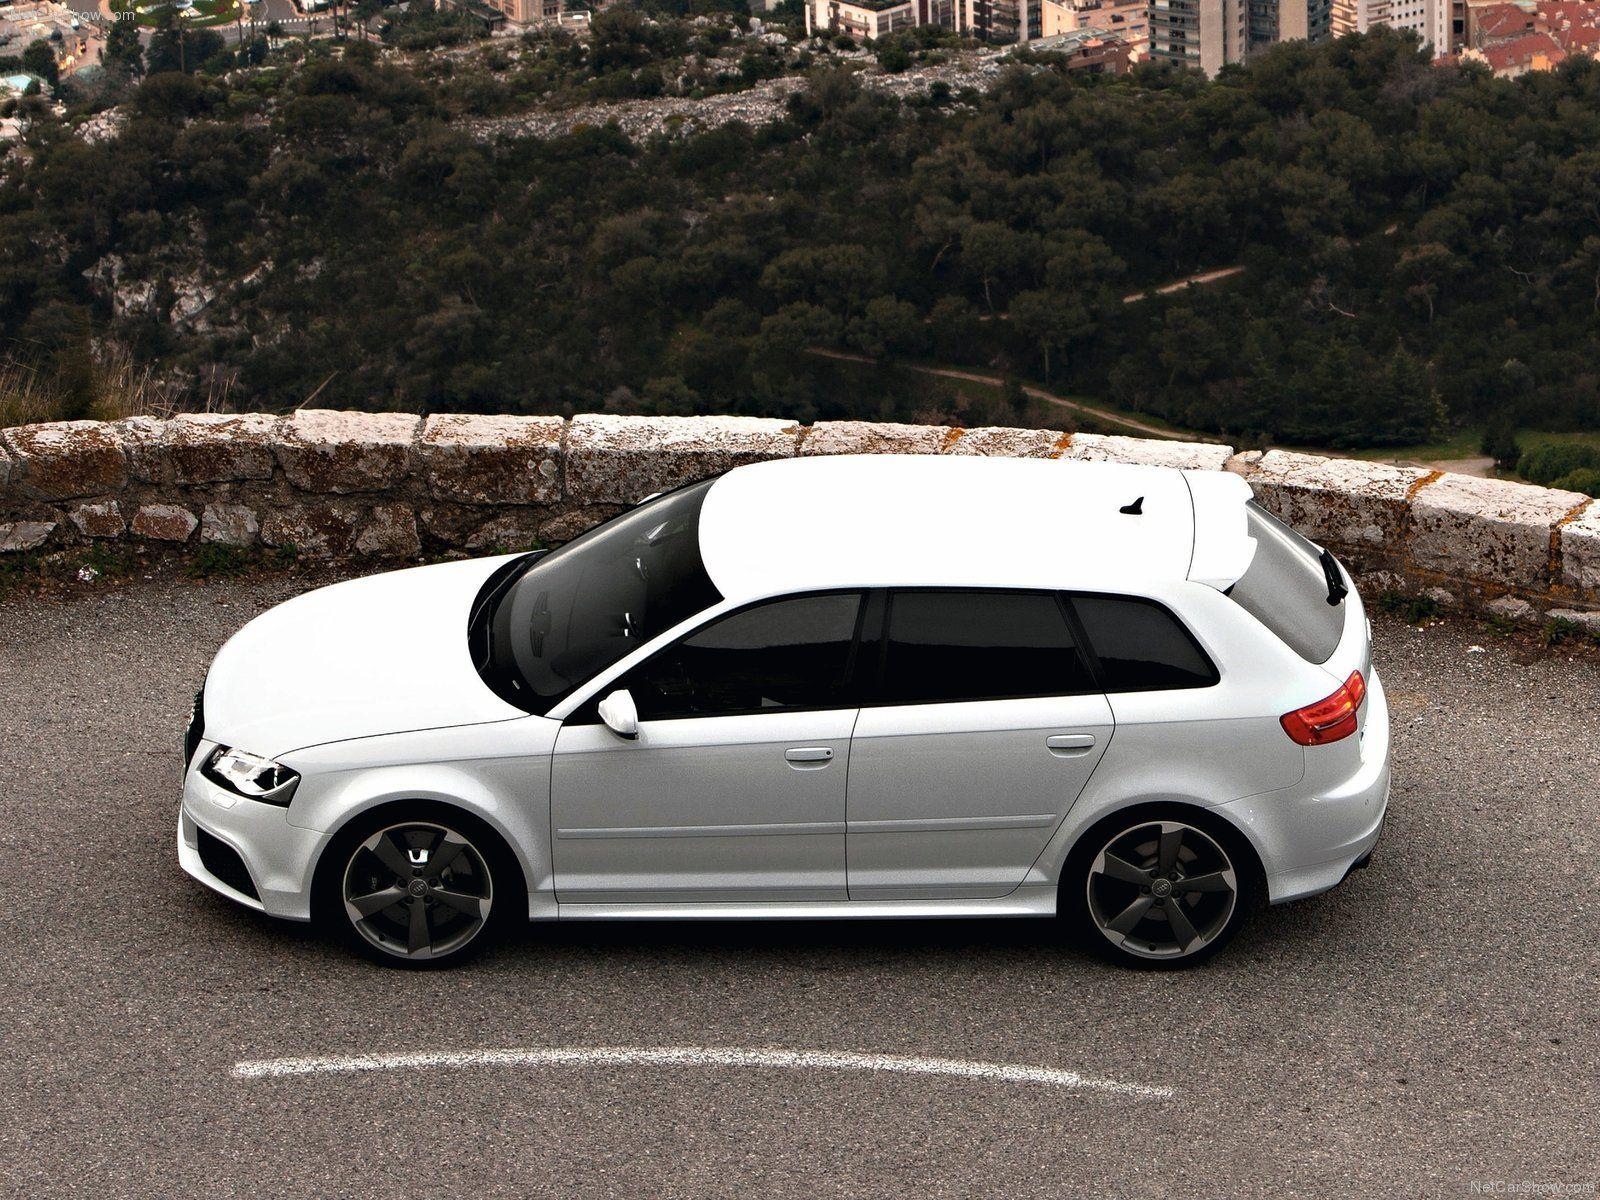 Audi RS3 Sportback picture #113083 | Audi photo gallery | CarsBase.com